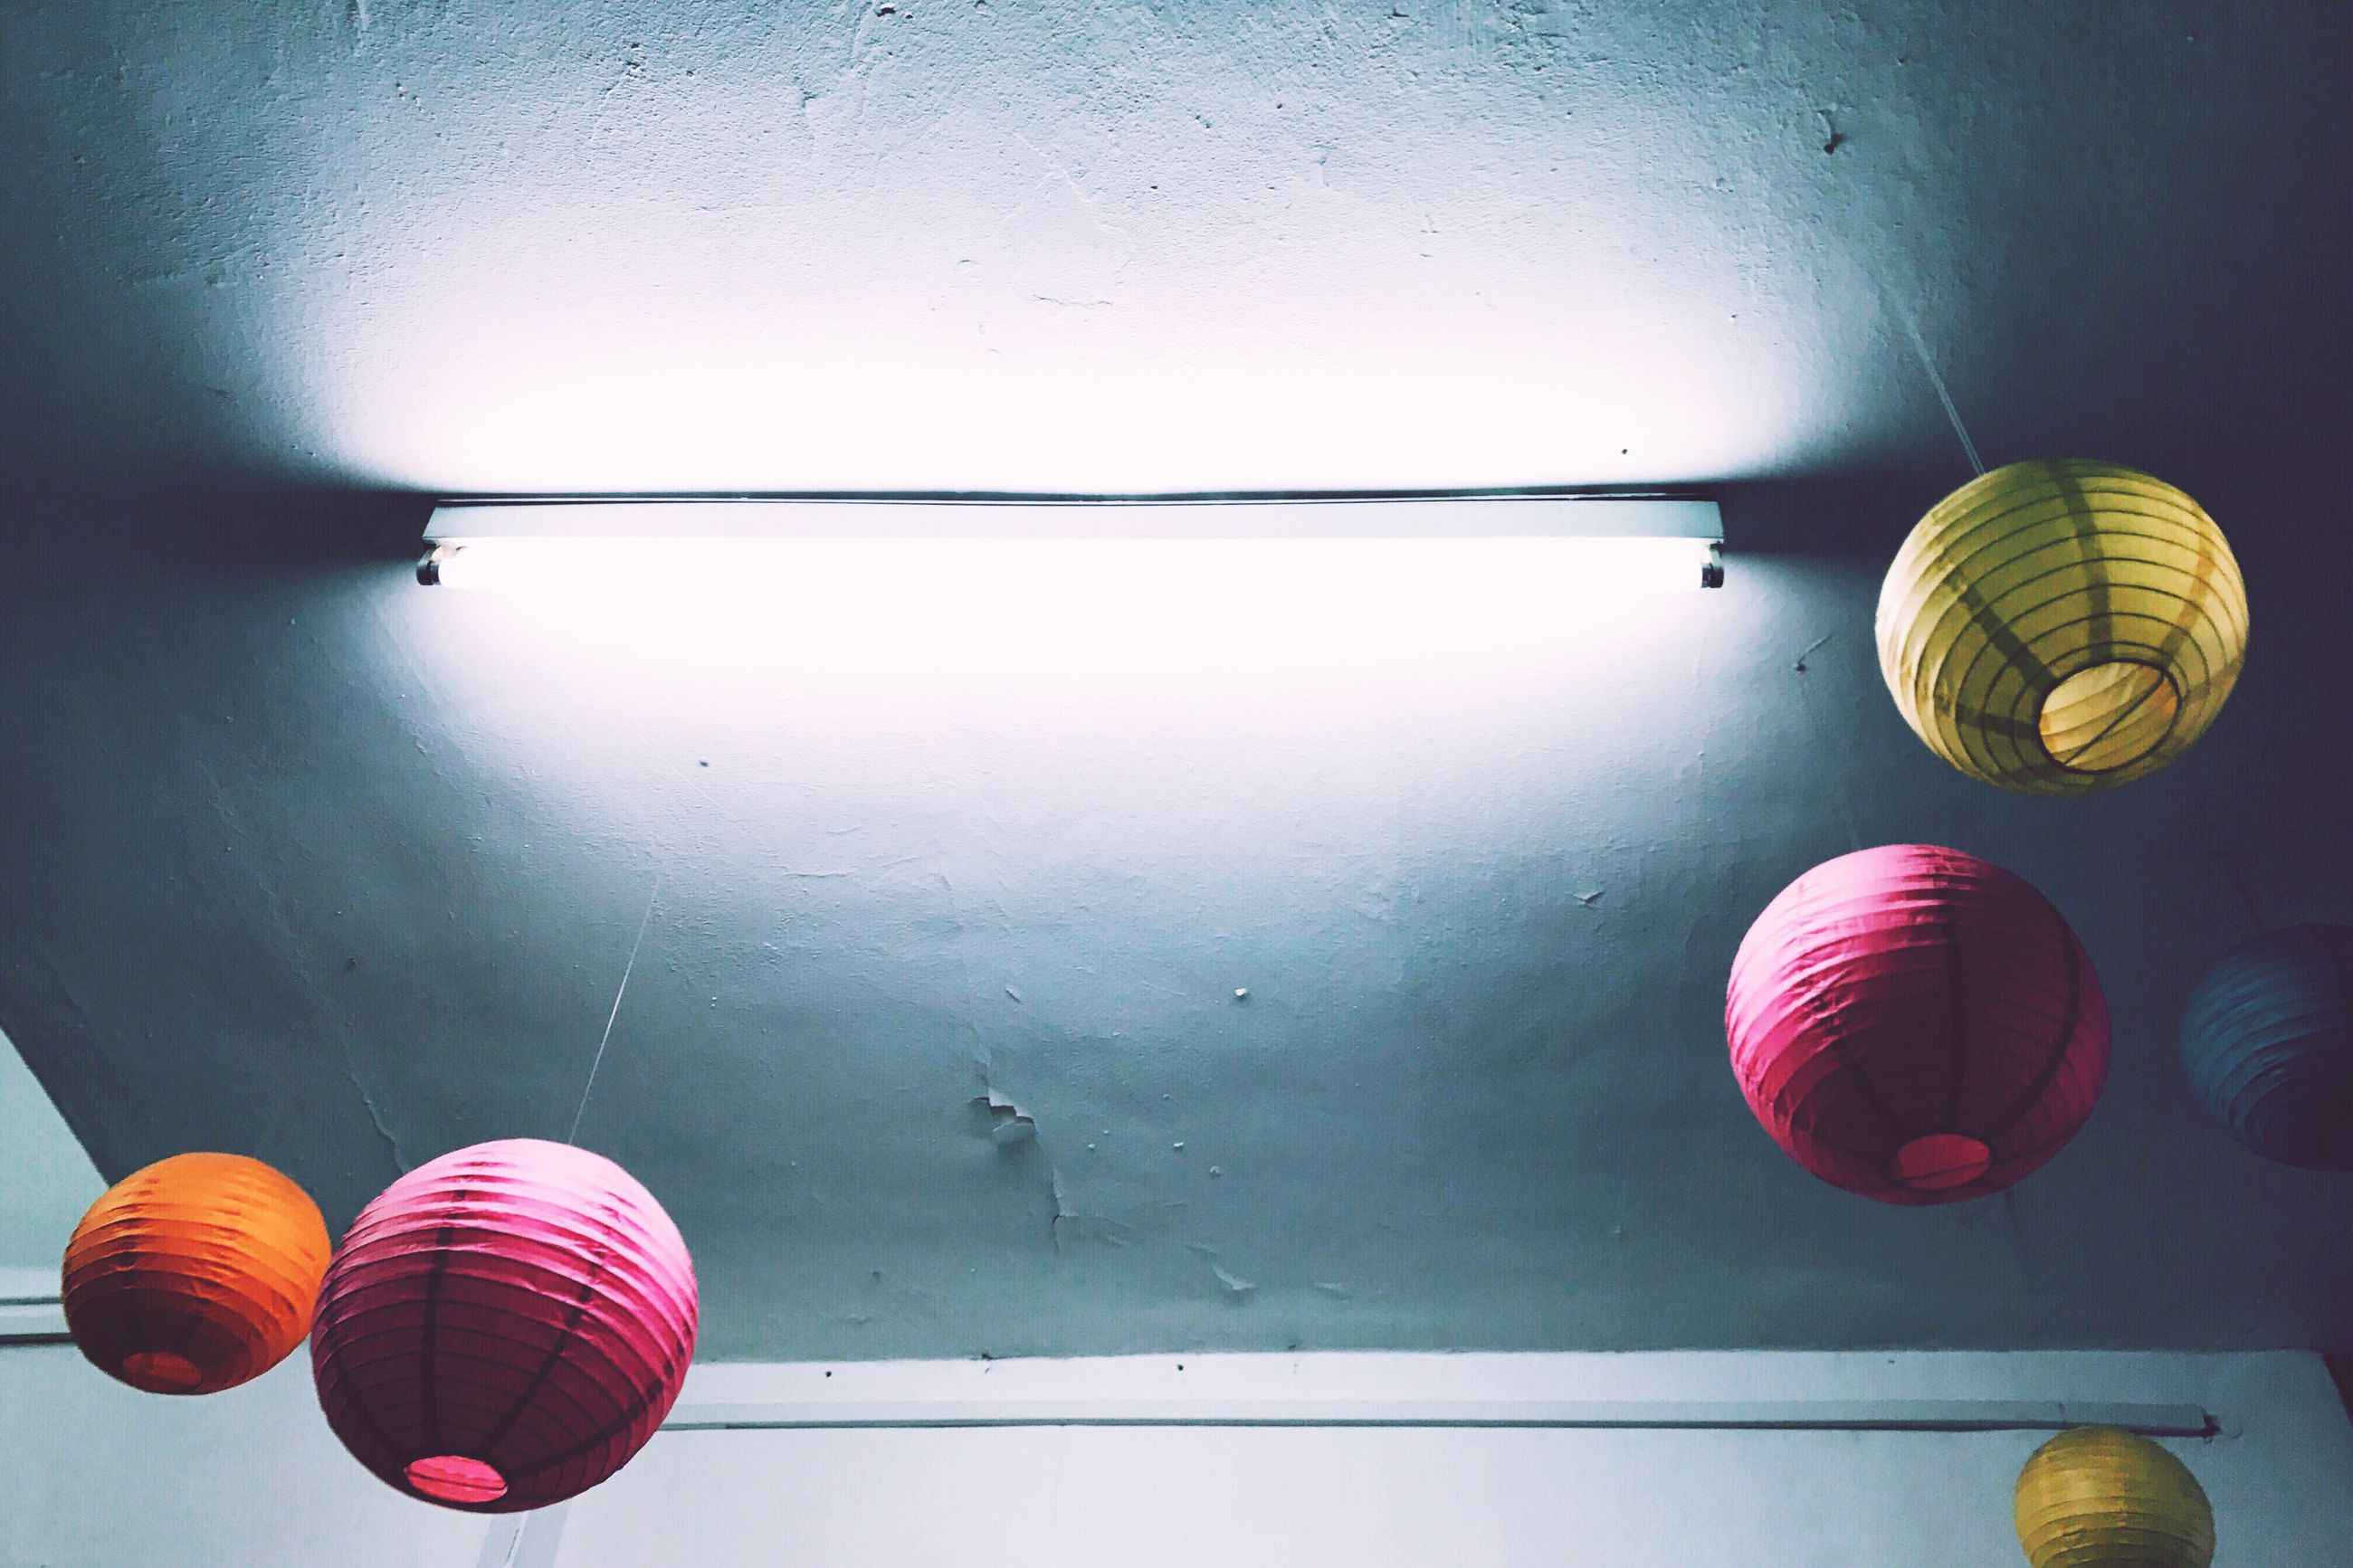 no people, multi colored, low angle view, indoors, day, ball, lantern, architecture, close-up